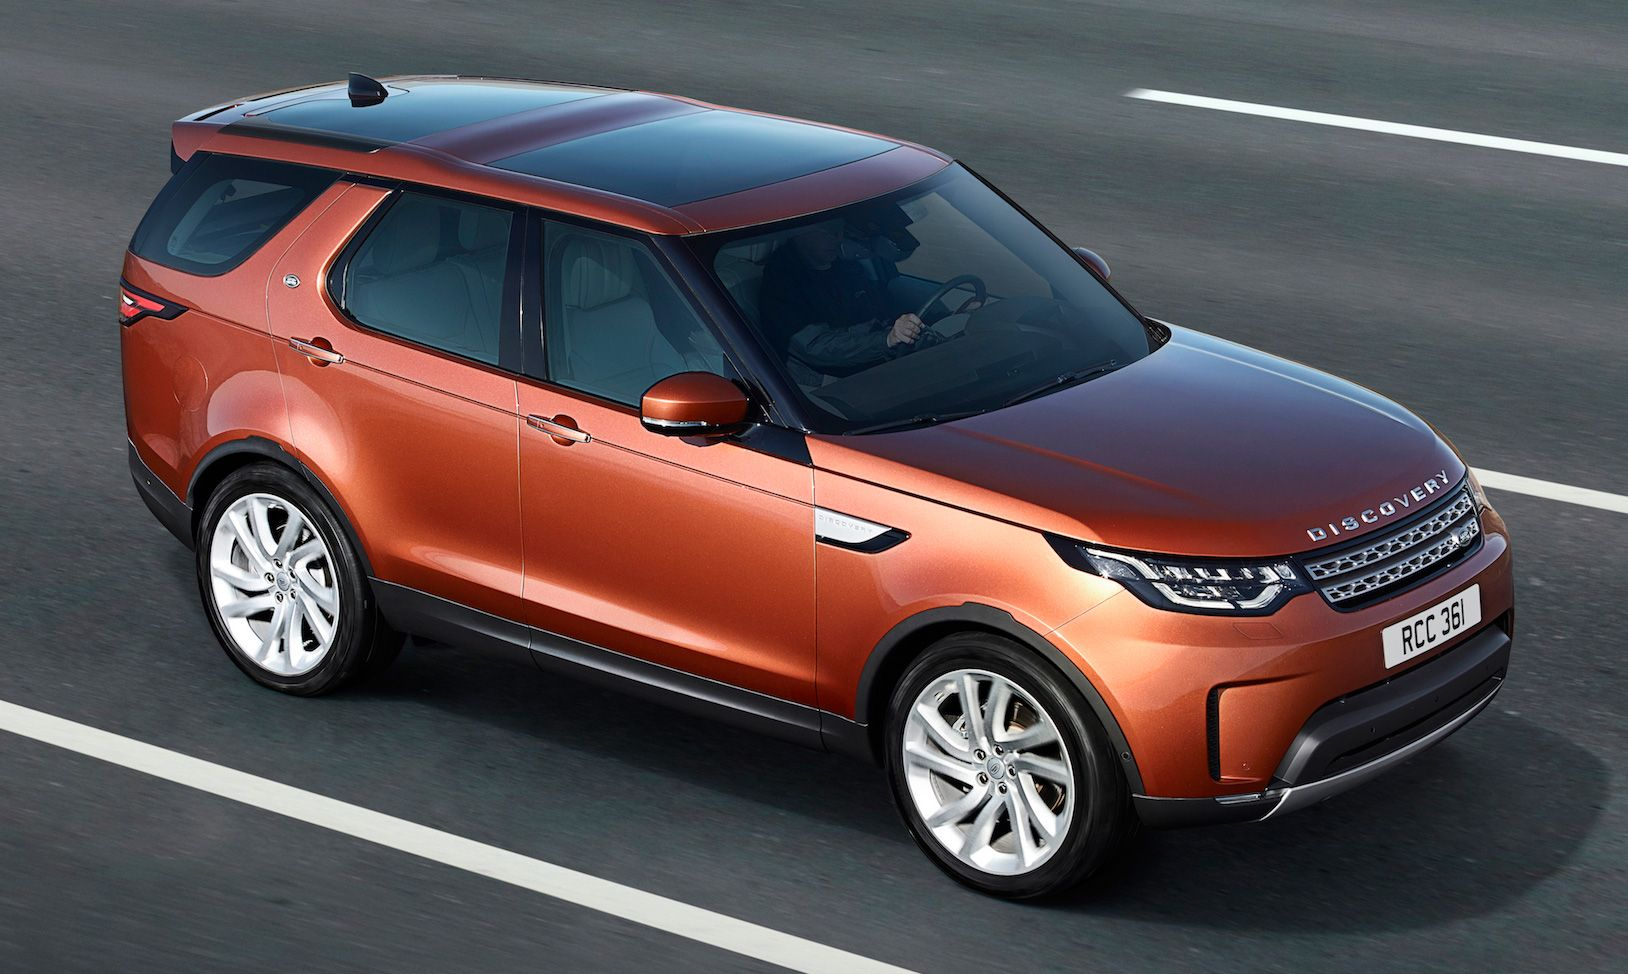 New Land Rover Discovery full 7seater, 480 kg lighter